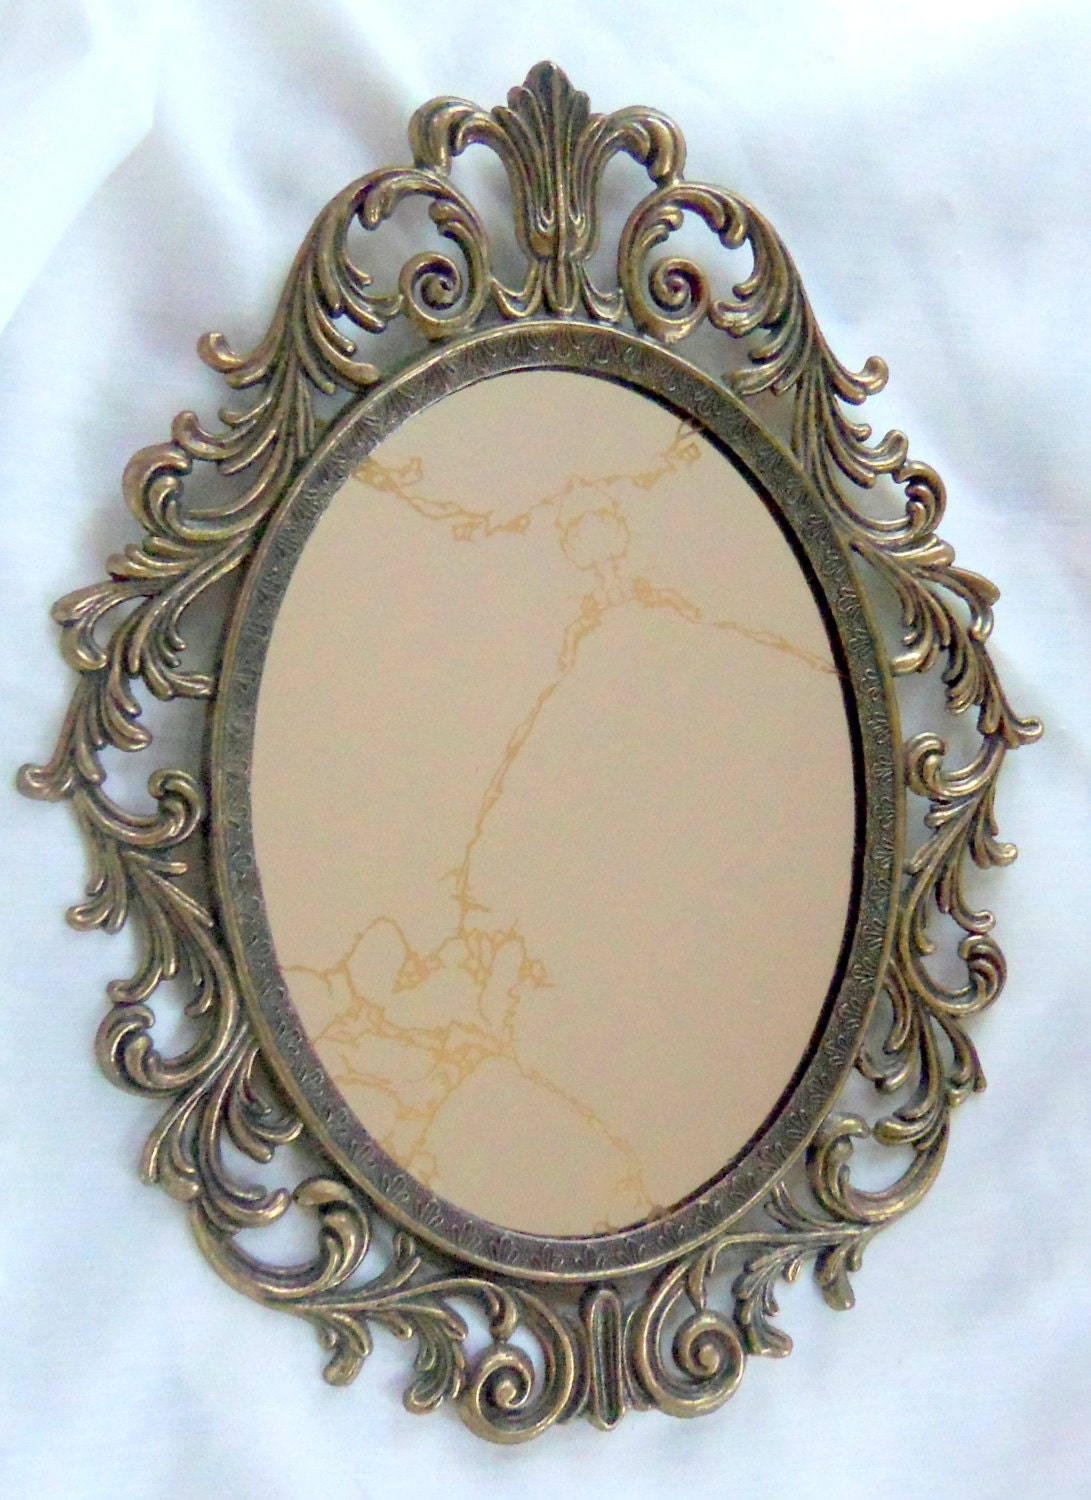 Vintage oval mirror antique brass frame ornate treasury item for Antique mirror